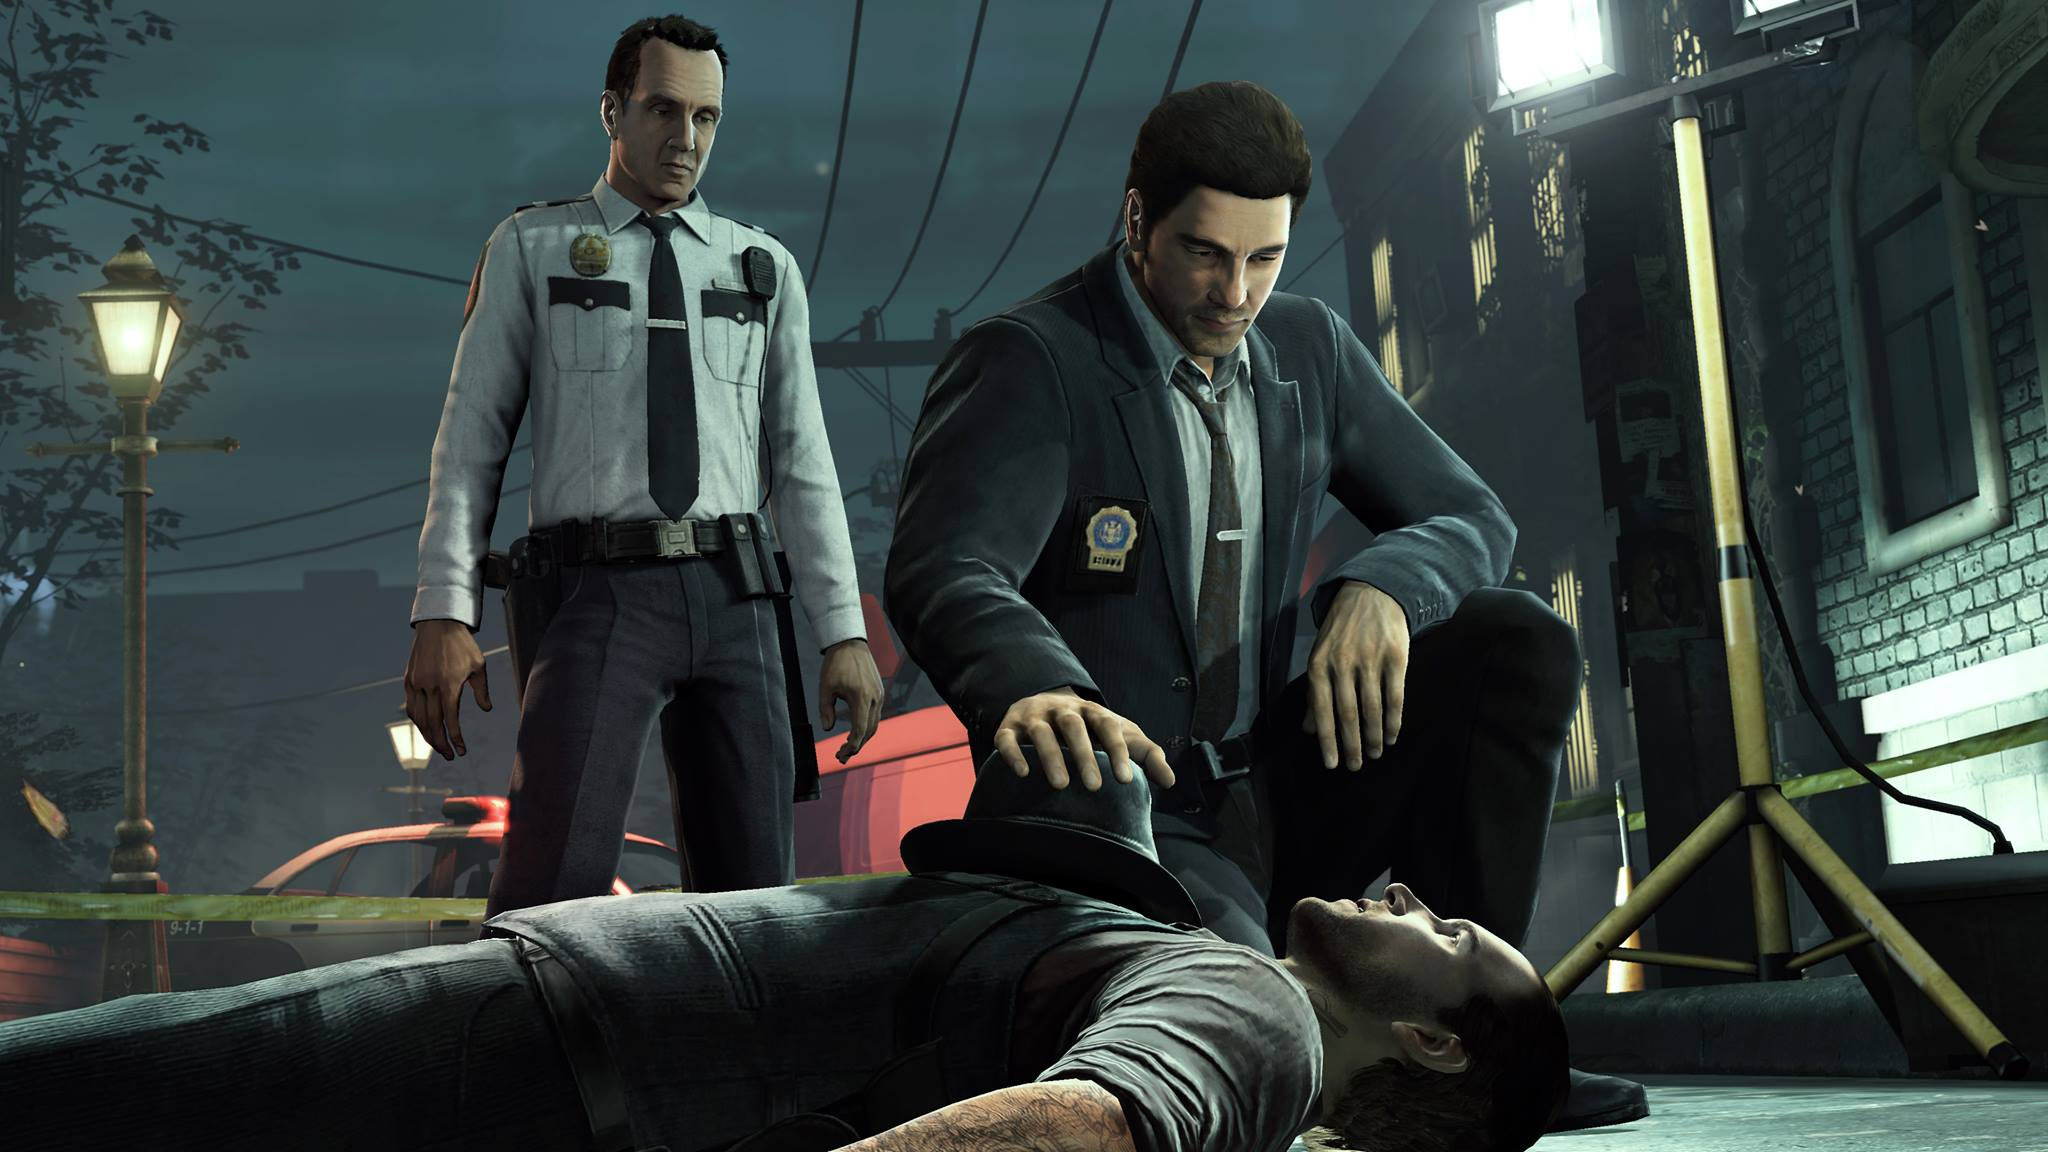 murdered-soul-suspect-11